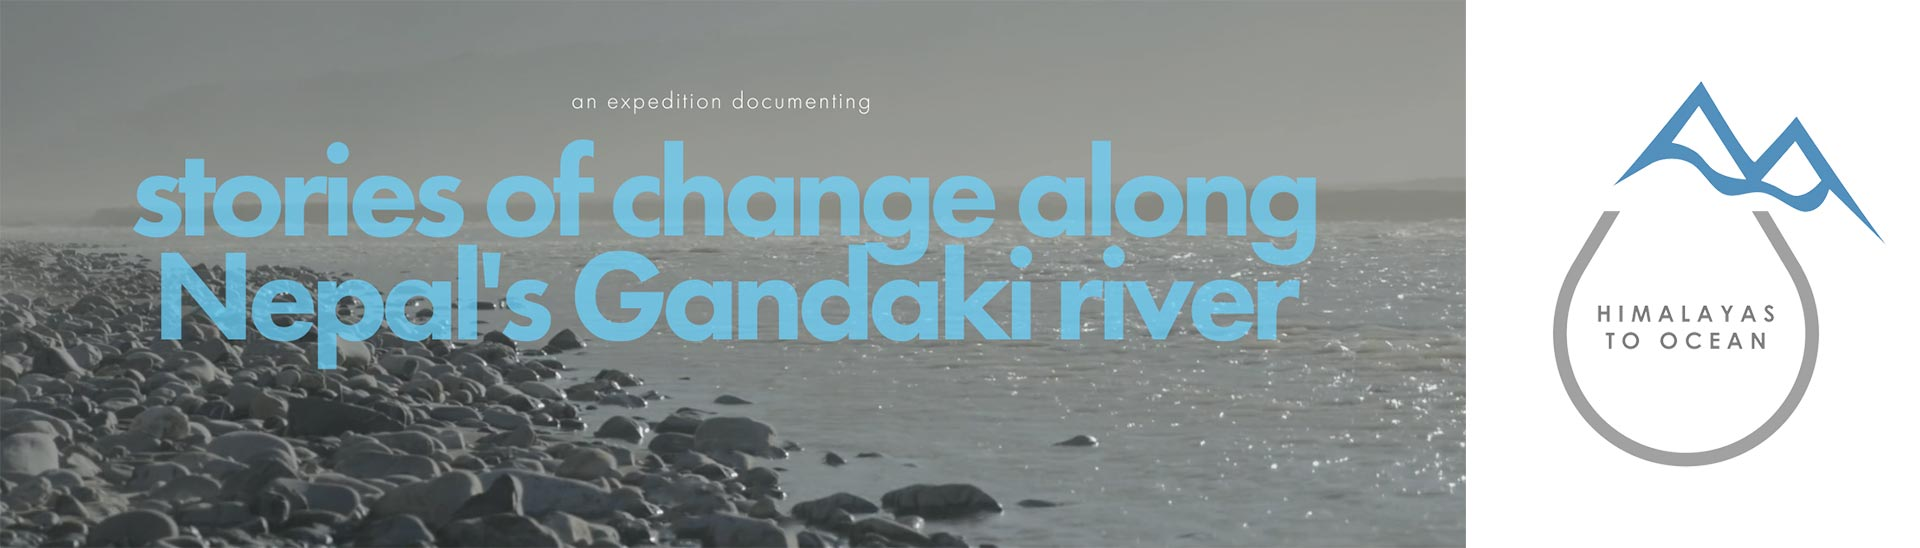 Himalayas to Ocean - Stories of change along Nepal's Gandaki River